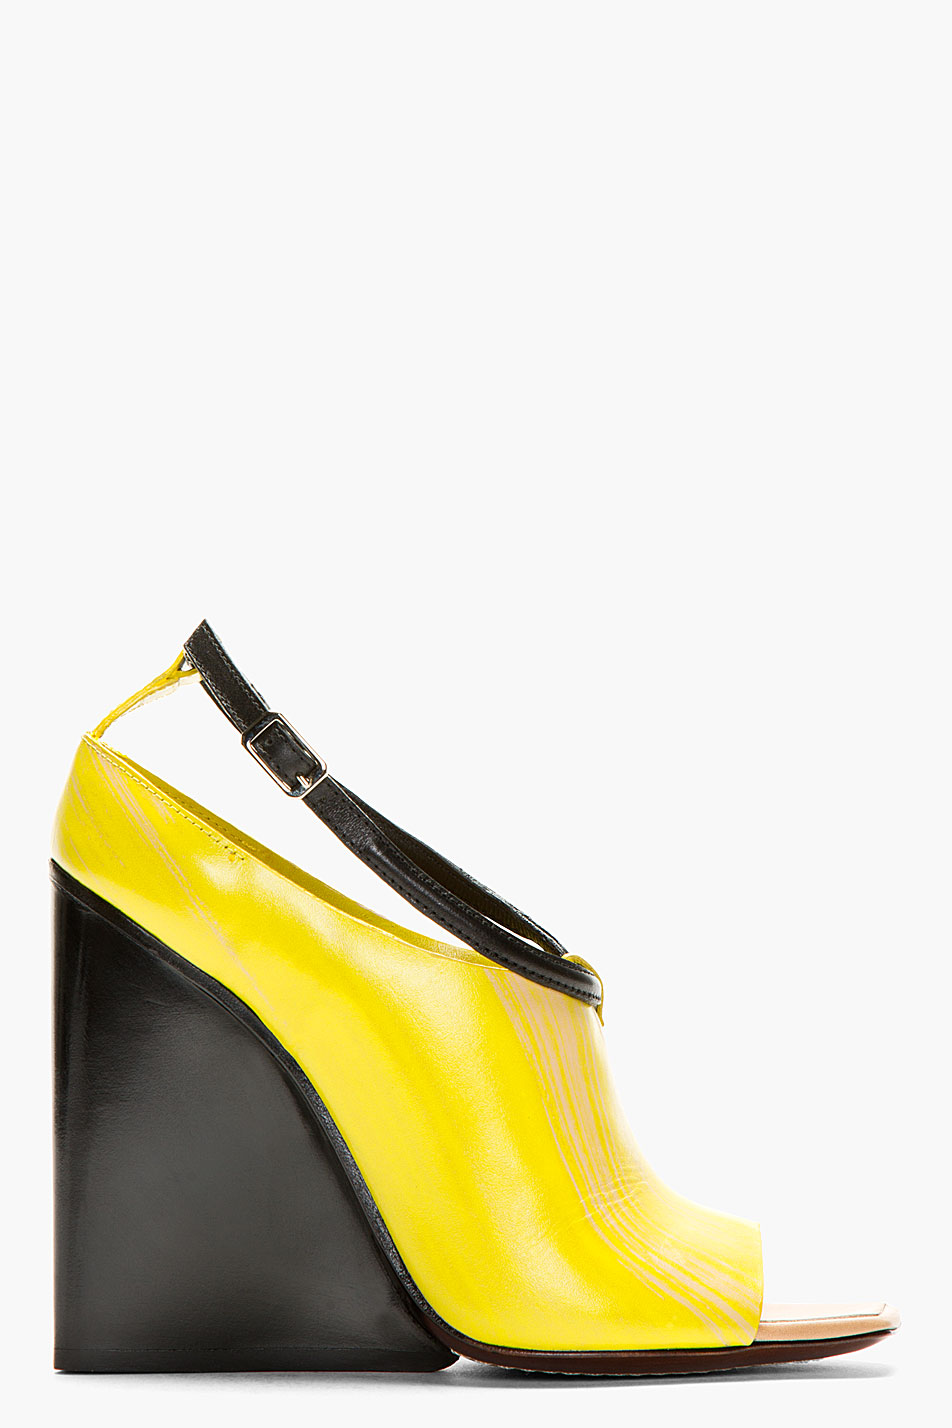 Costume national yellow tapered wedge heels